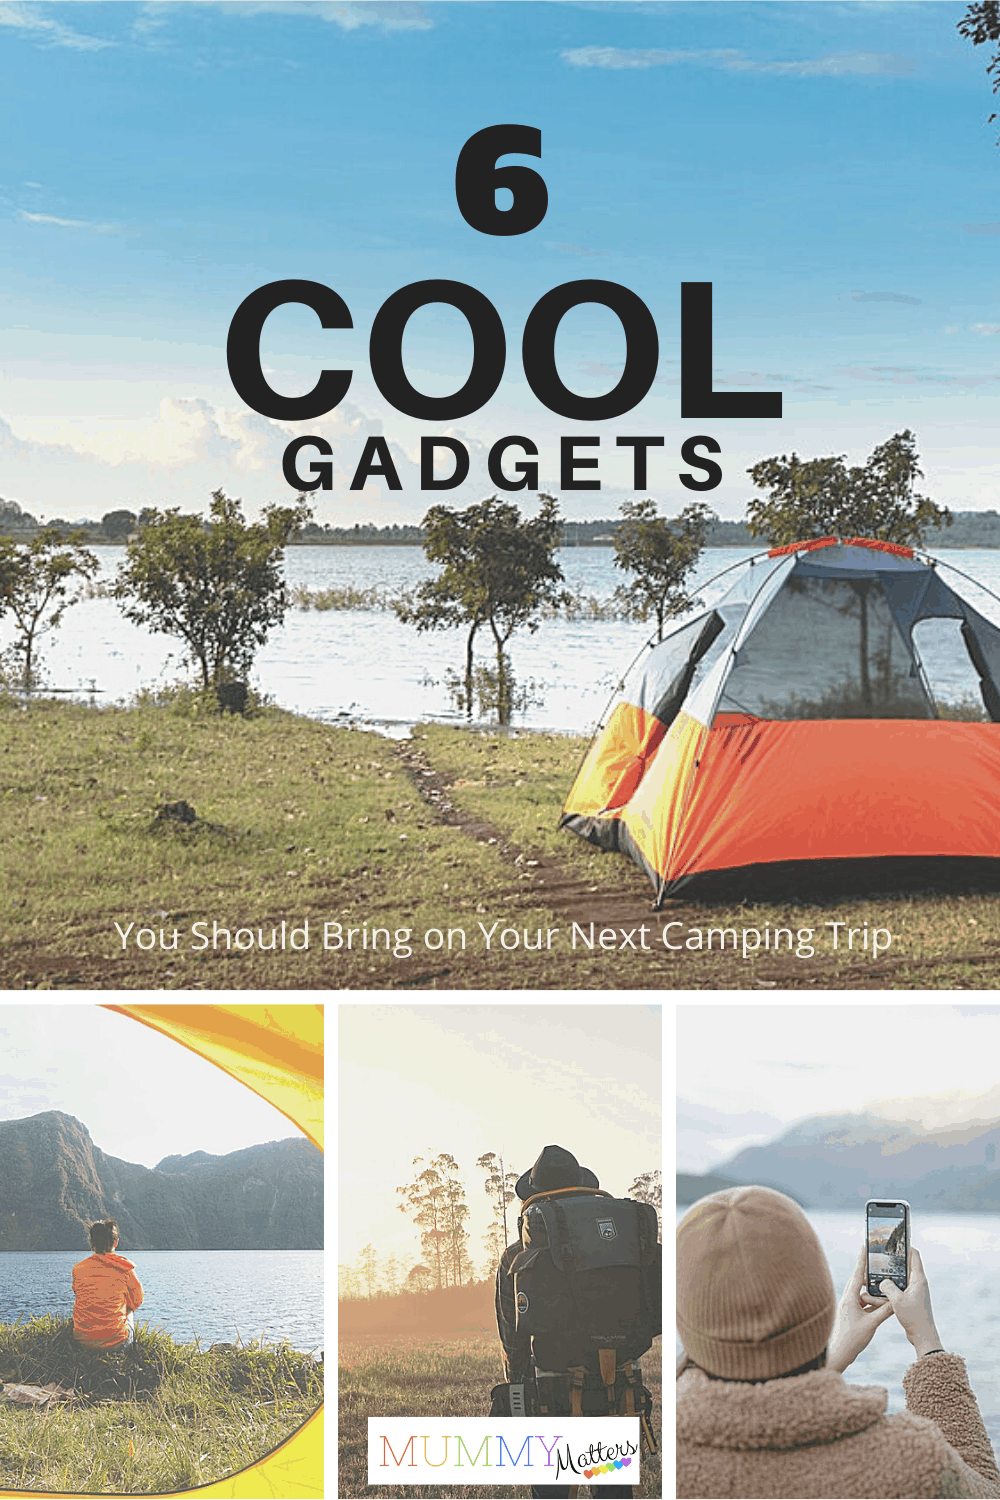 If you're planning your next camping trip you might want to check out our list of 6 cool gadgets you're going to want to pack for your best trip yet.